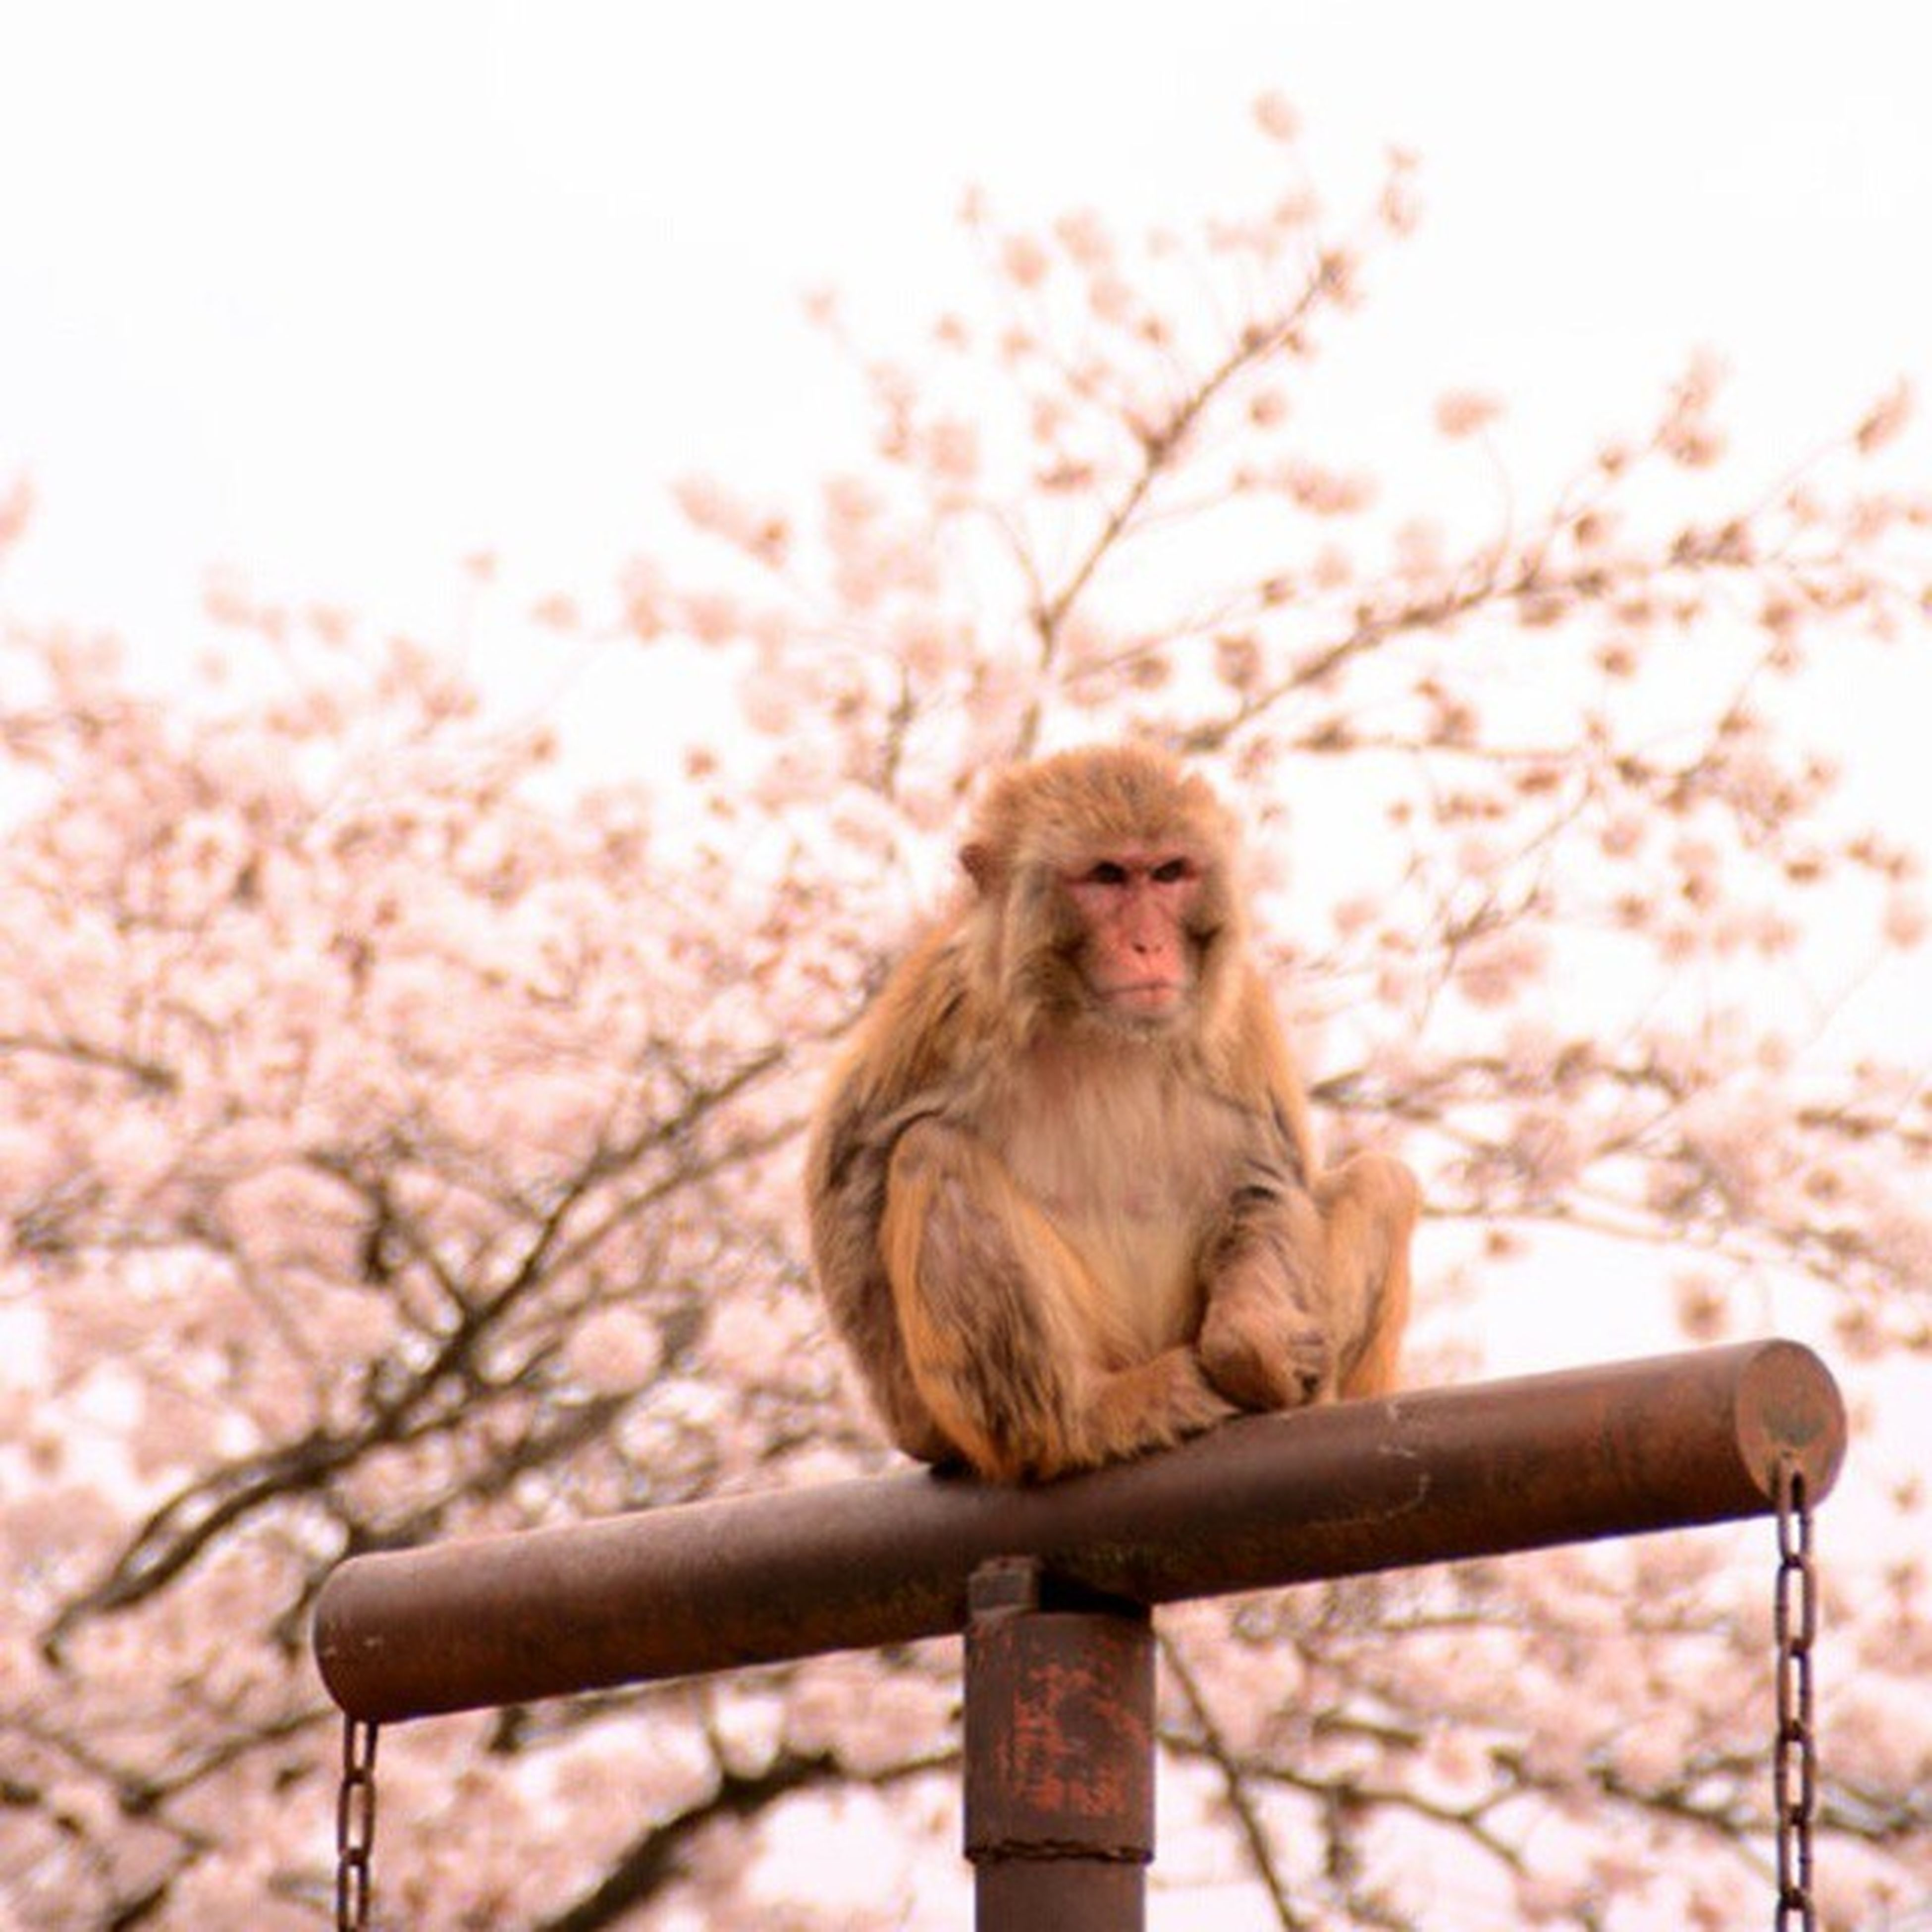 tree, animal themes, one animal, mammal, low angle view, branch, focus on foreground, monkey, sitting, nature, wildlife, outdoors, domestic animals, day, sky, clear sky, full length, pets, no people, animals in the wild